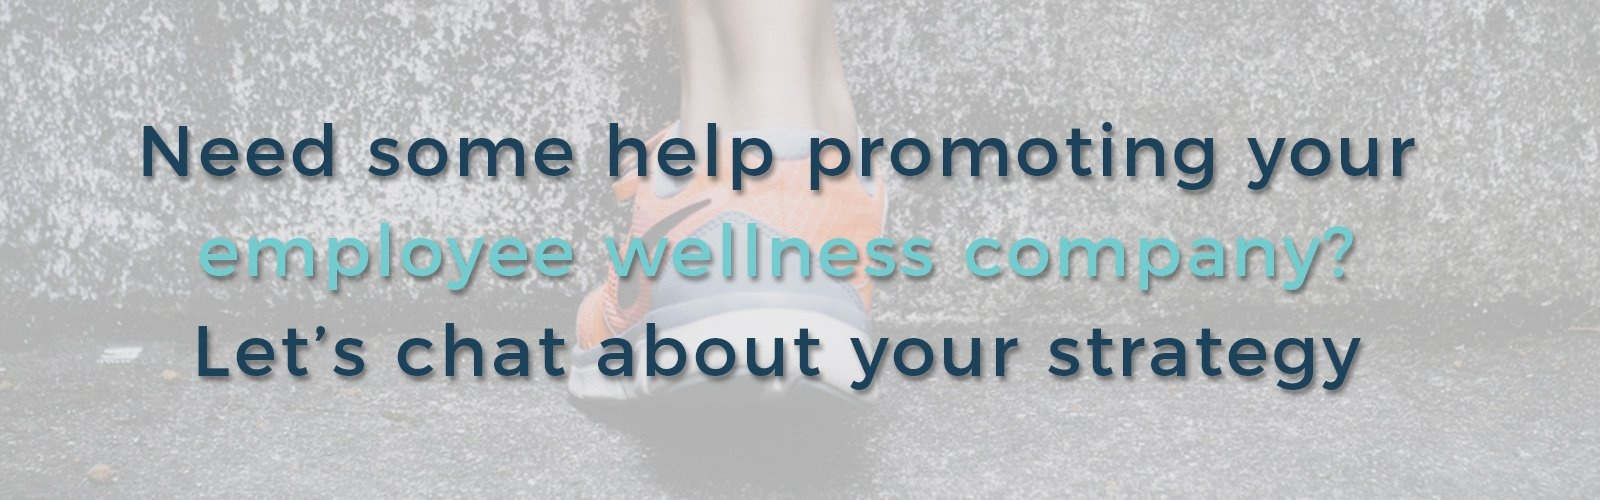 employee wellness marketing